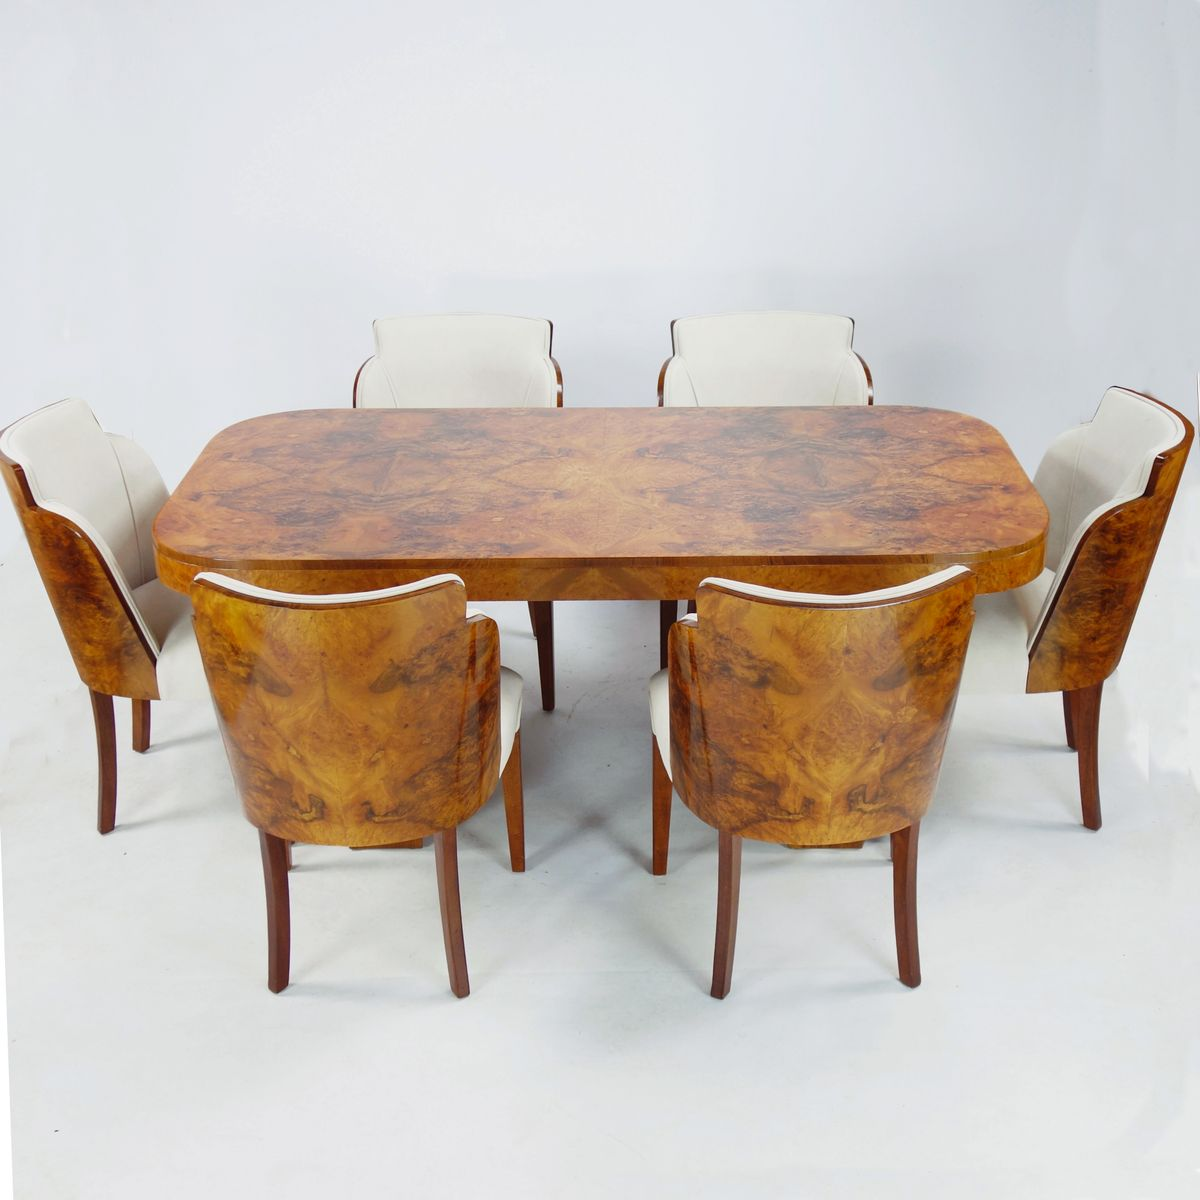 Art Deco Dining Set From Harry U0026 Lou Epstein, 1930s